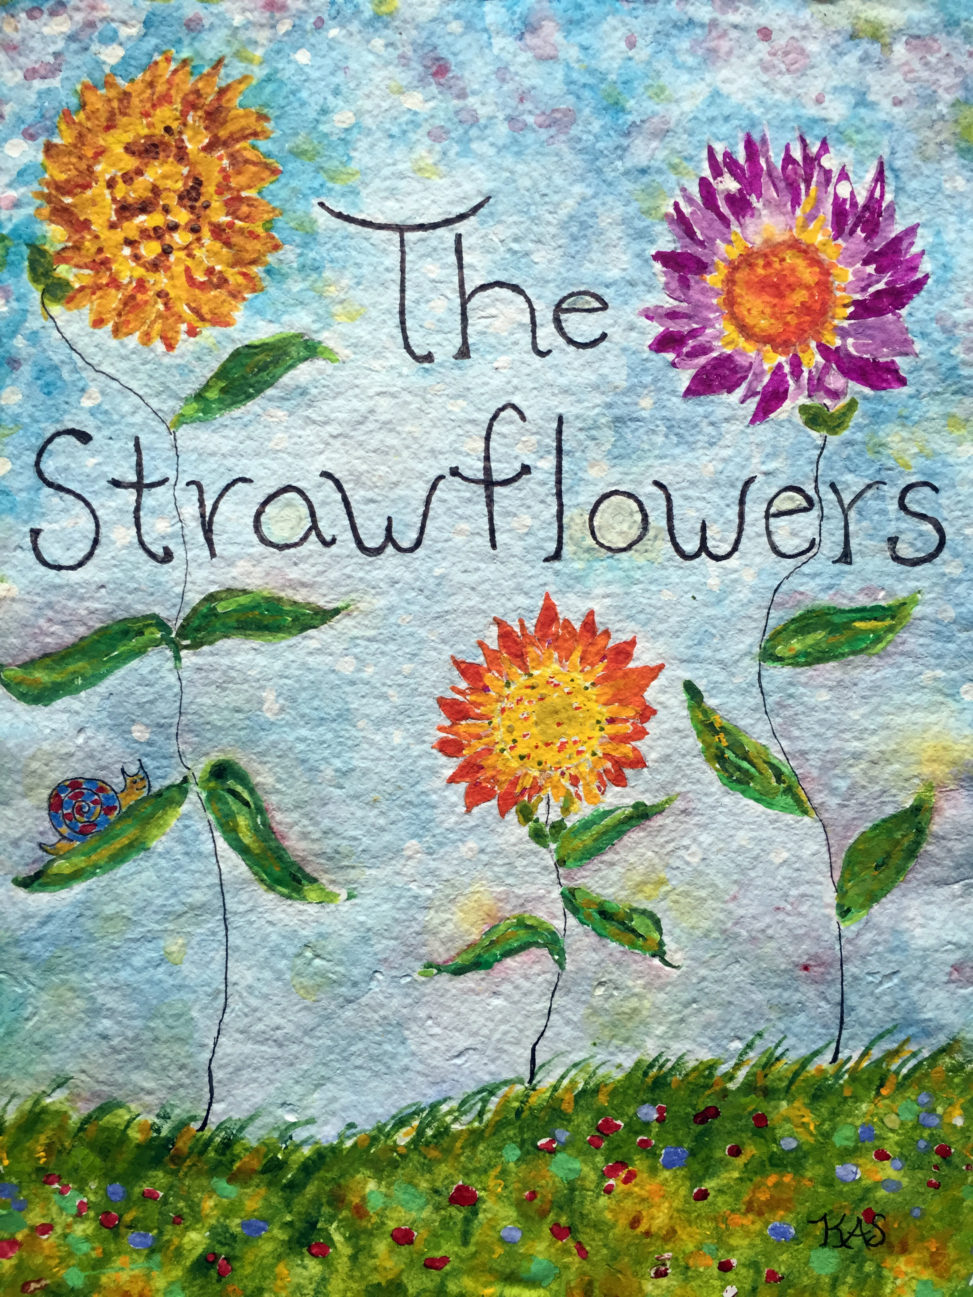 The strawflowers toby tellier the strawflowers mightylinksfo